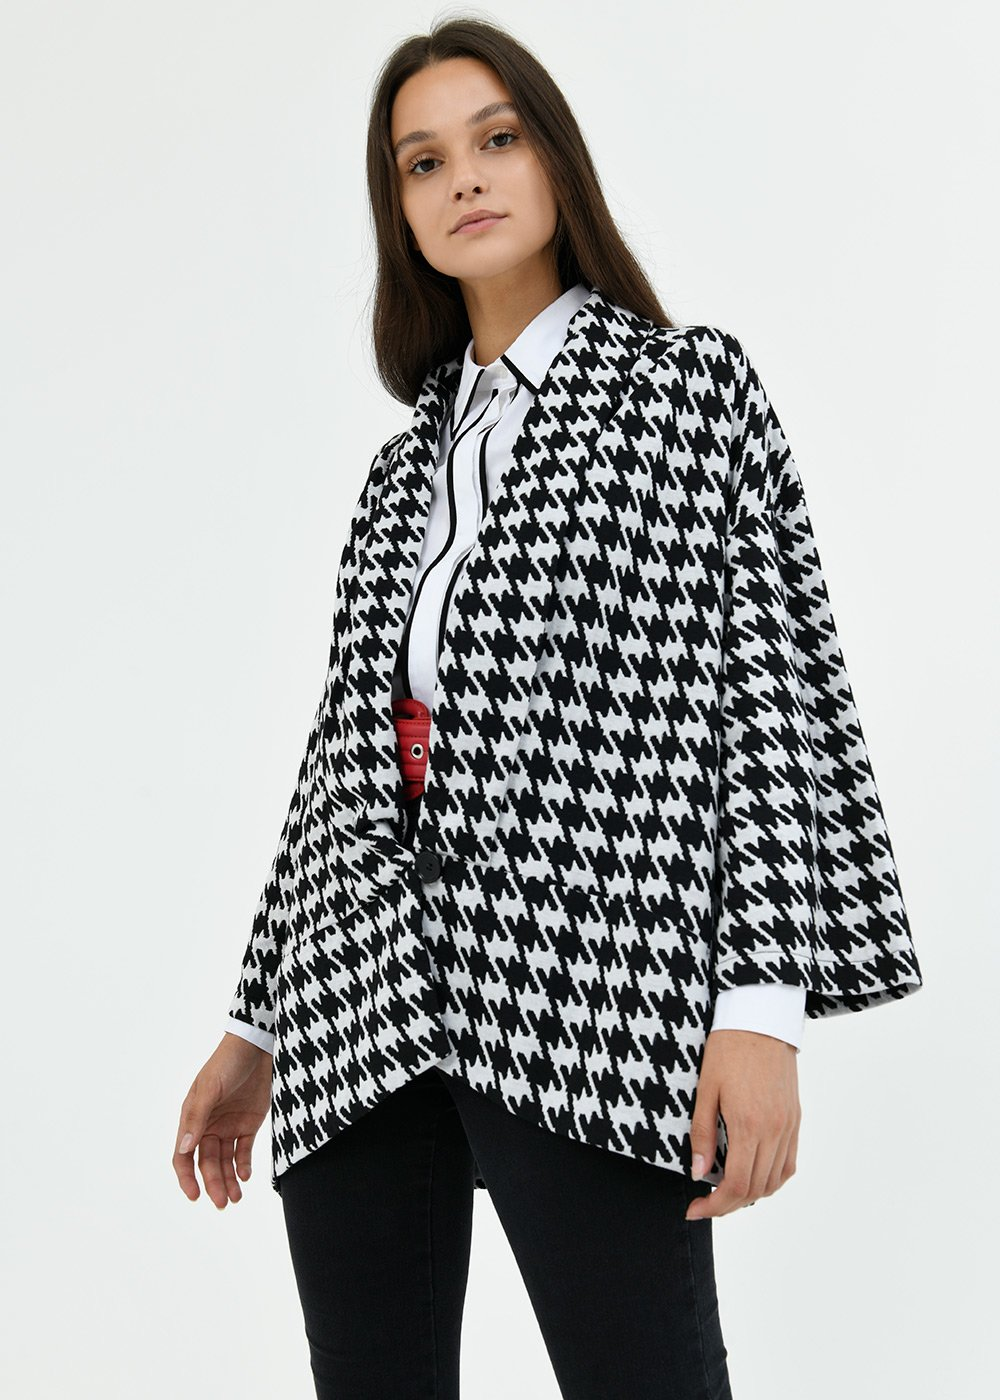 Cardigan Clio Black&white - White /  Black Fantasia - Donna